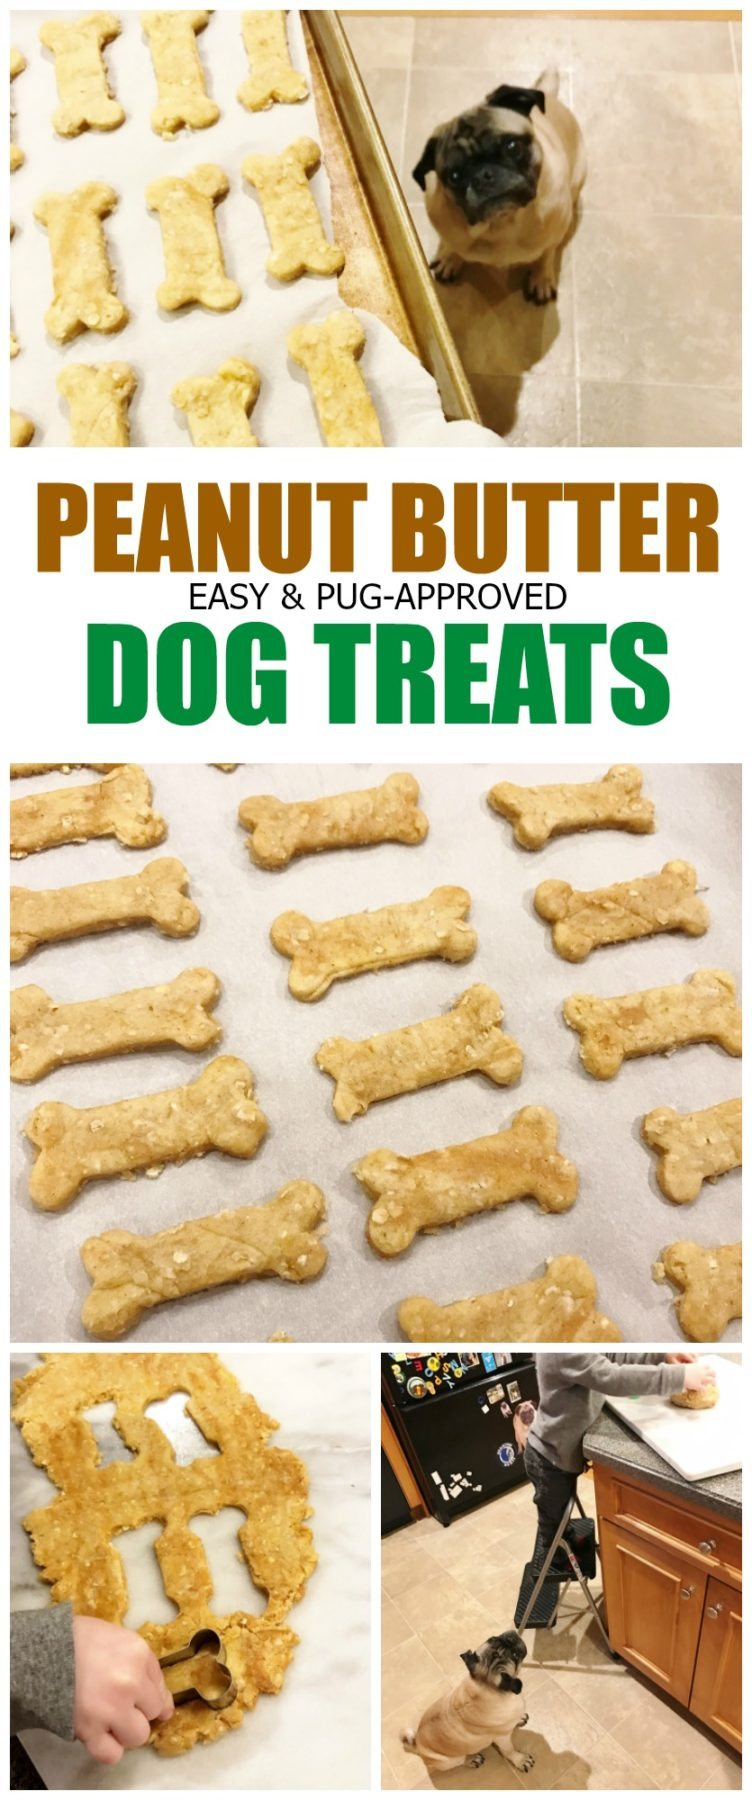 peanut-butter-dog-treats-pug-approved